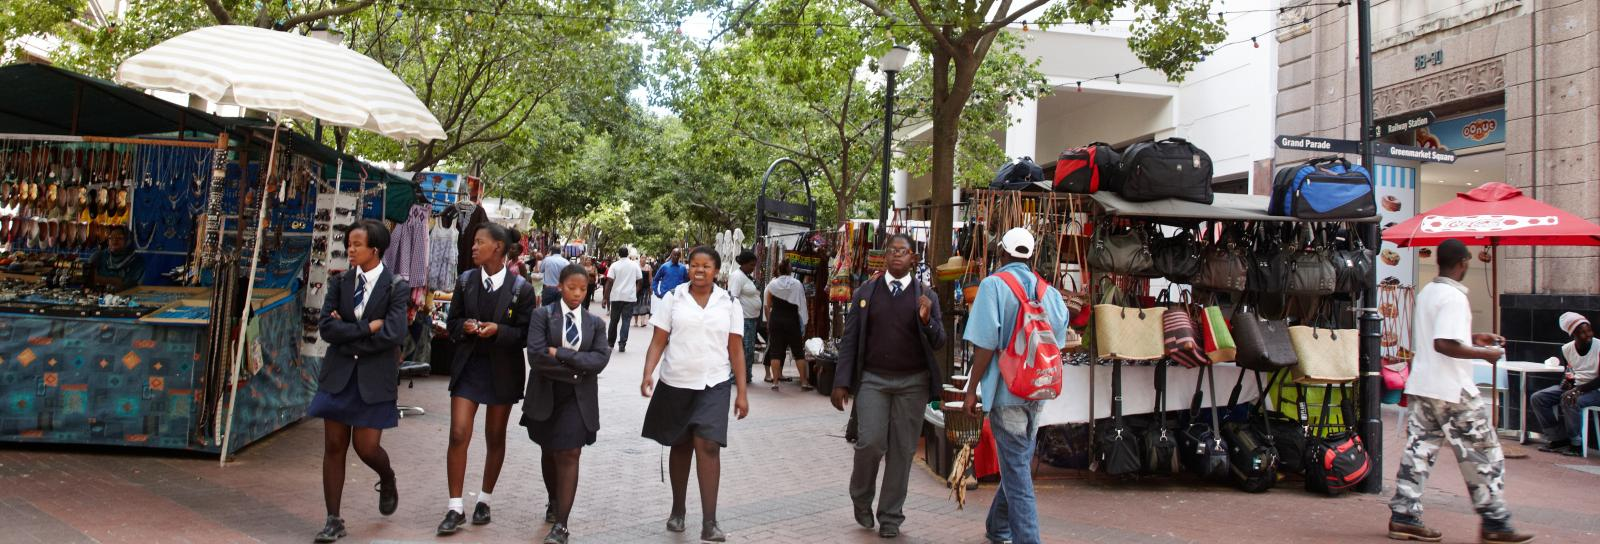 South African teens walking on busy city street